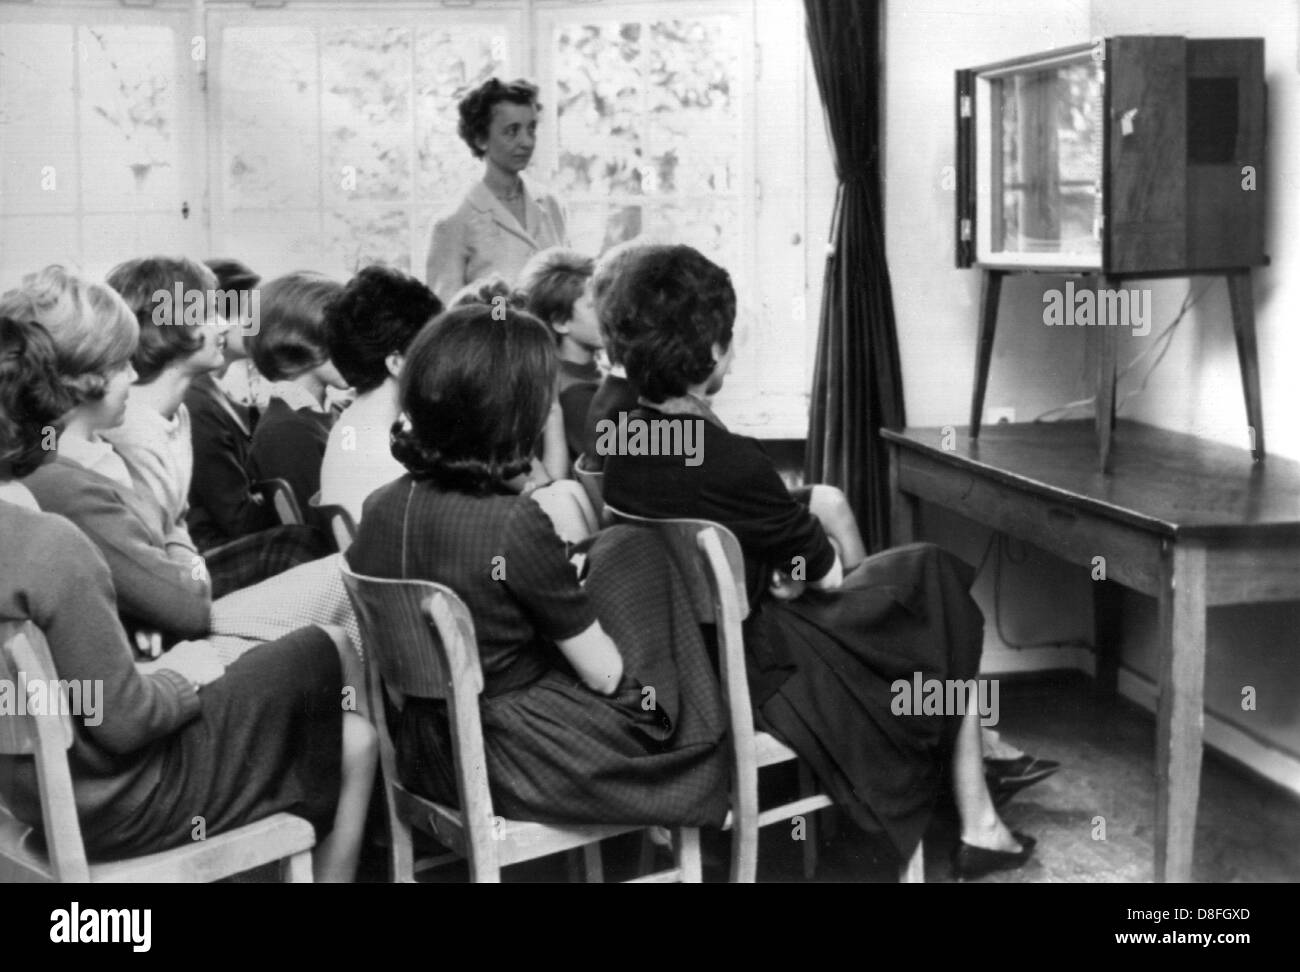 For the first time, German pupils are watching television during a school lesson on the 23rd of October in 1961. Stock Photo